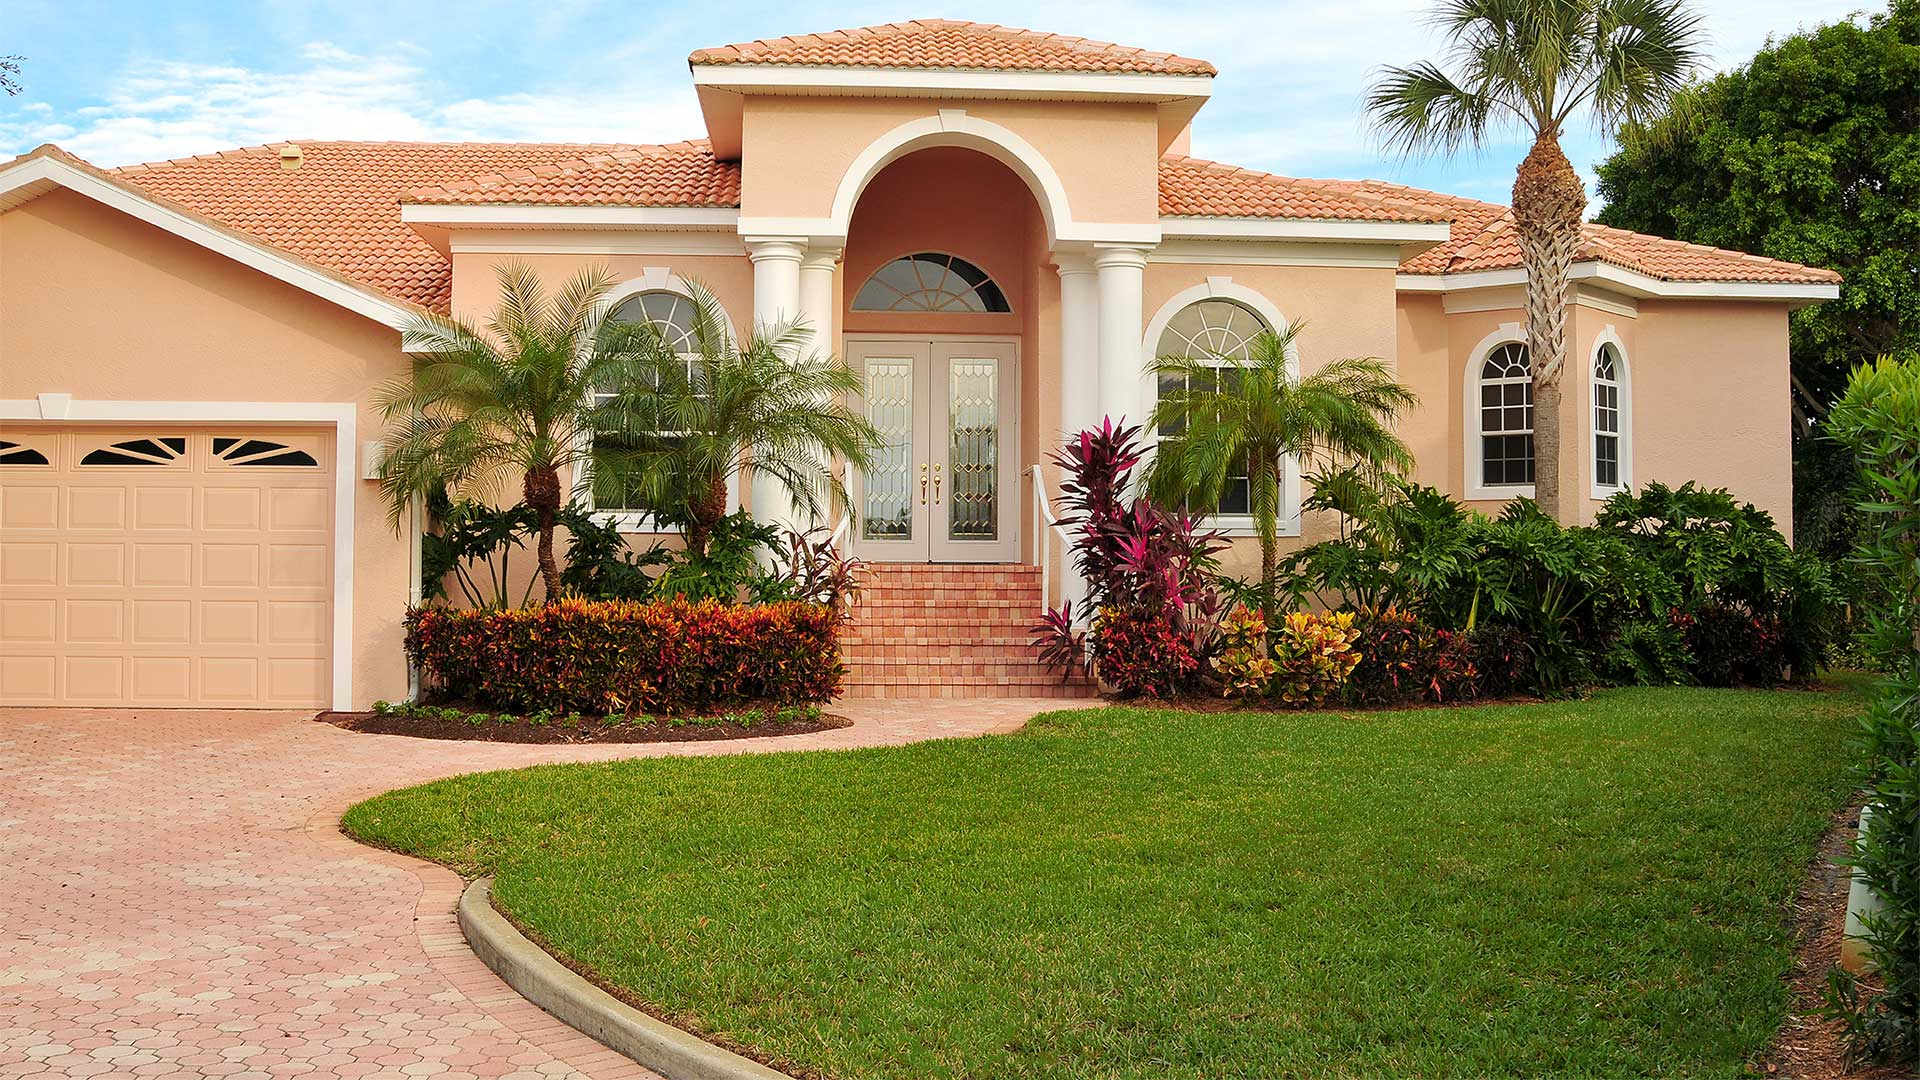 Mature landscaping and palm trees at a home that contracts us for our full-service lawn and landscape maintenance services.